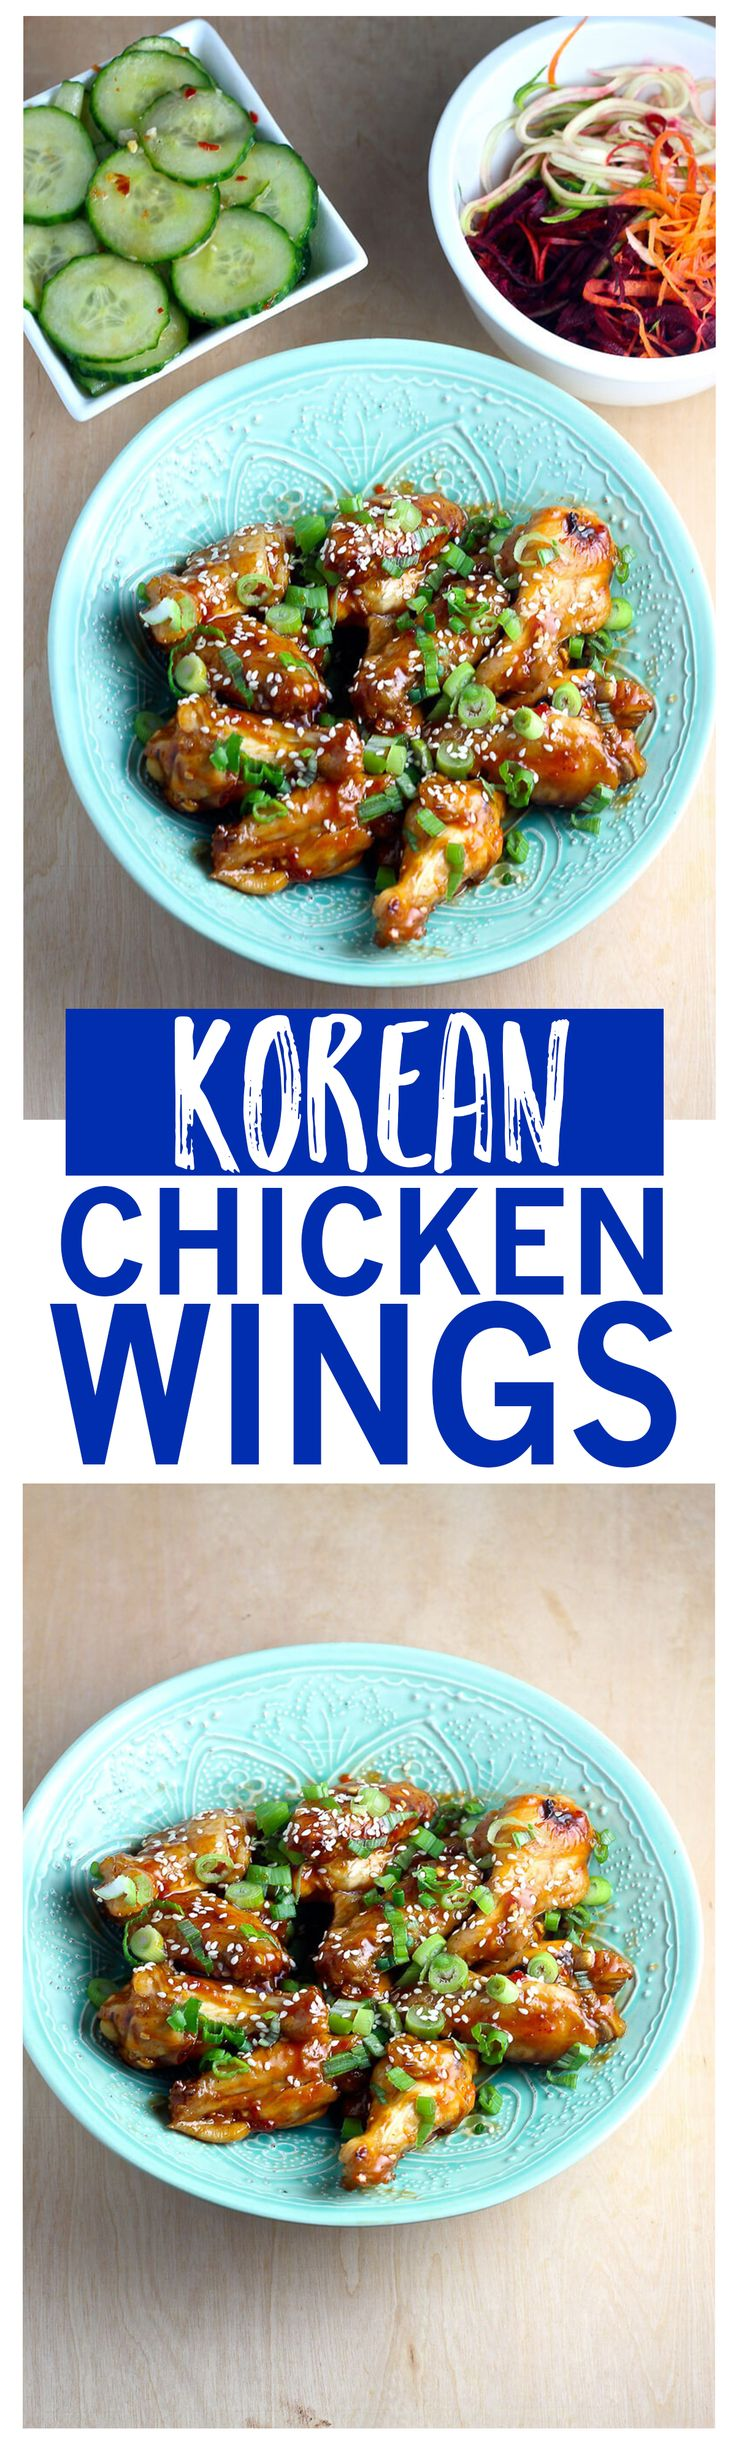 These sesame-flavoured Korean Chicken Wings are a delicious, healthier way to enjoy your fave pub grub for dinner!